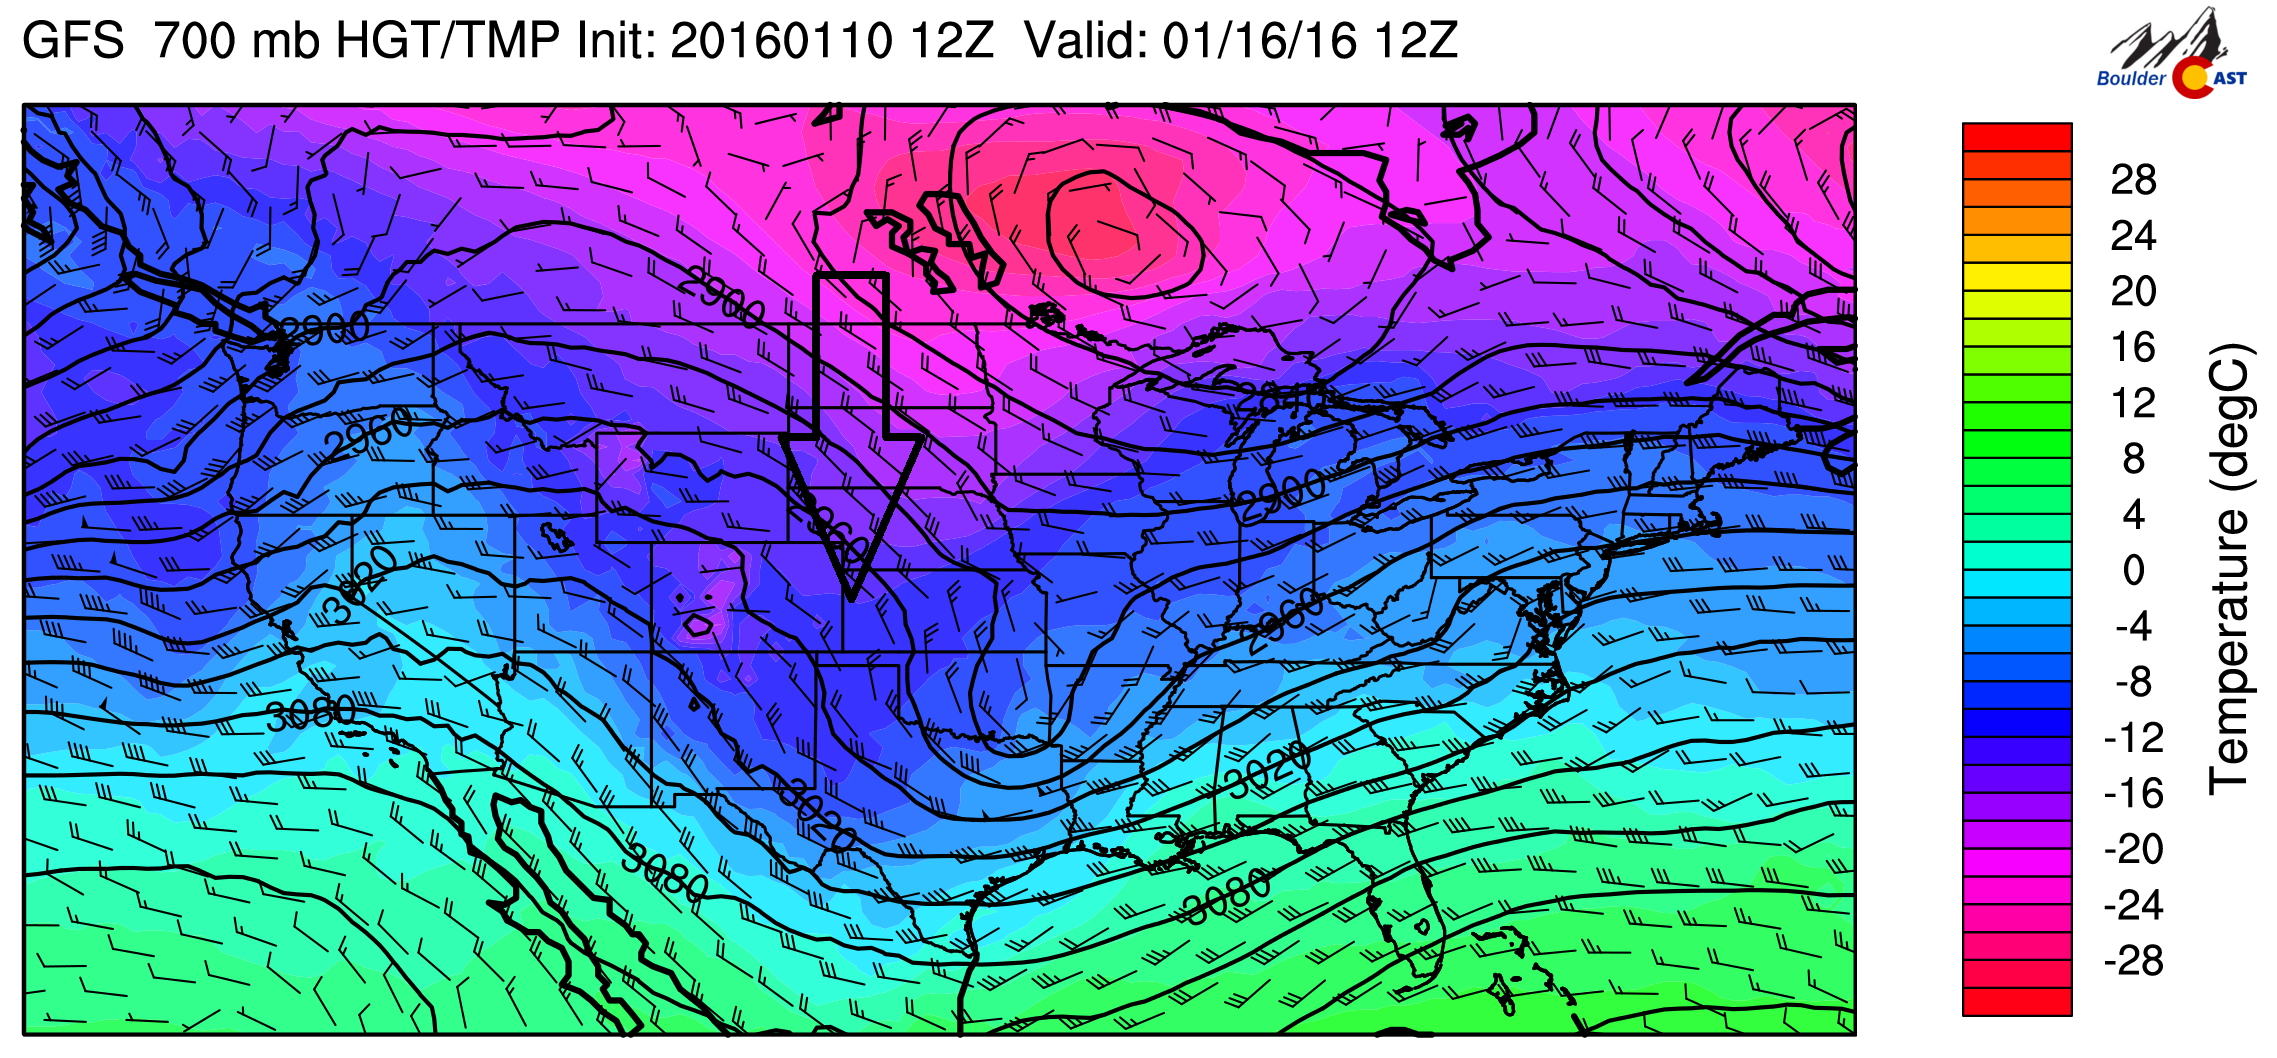 GFS 700 mb temperature for Friday